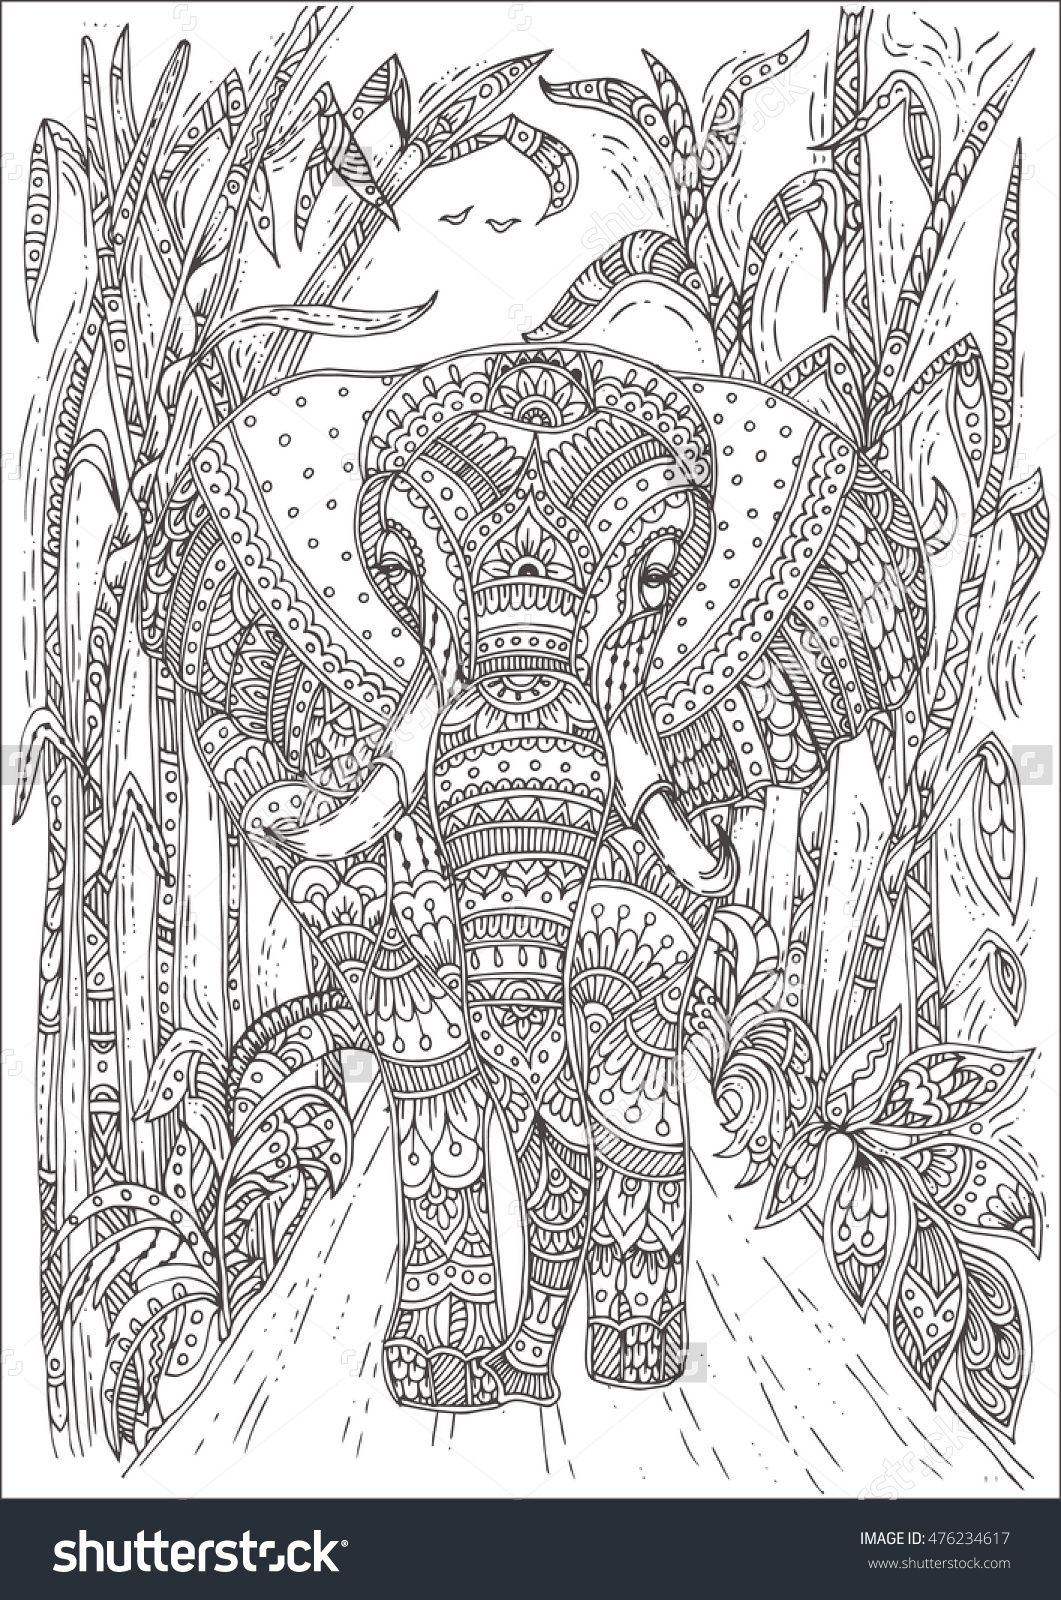 Hand Drawn Elephant With Ethnic Floral Doodle Pattern Coloring Page